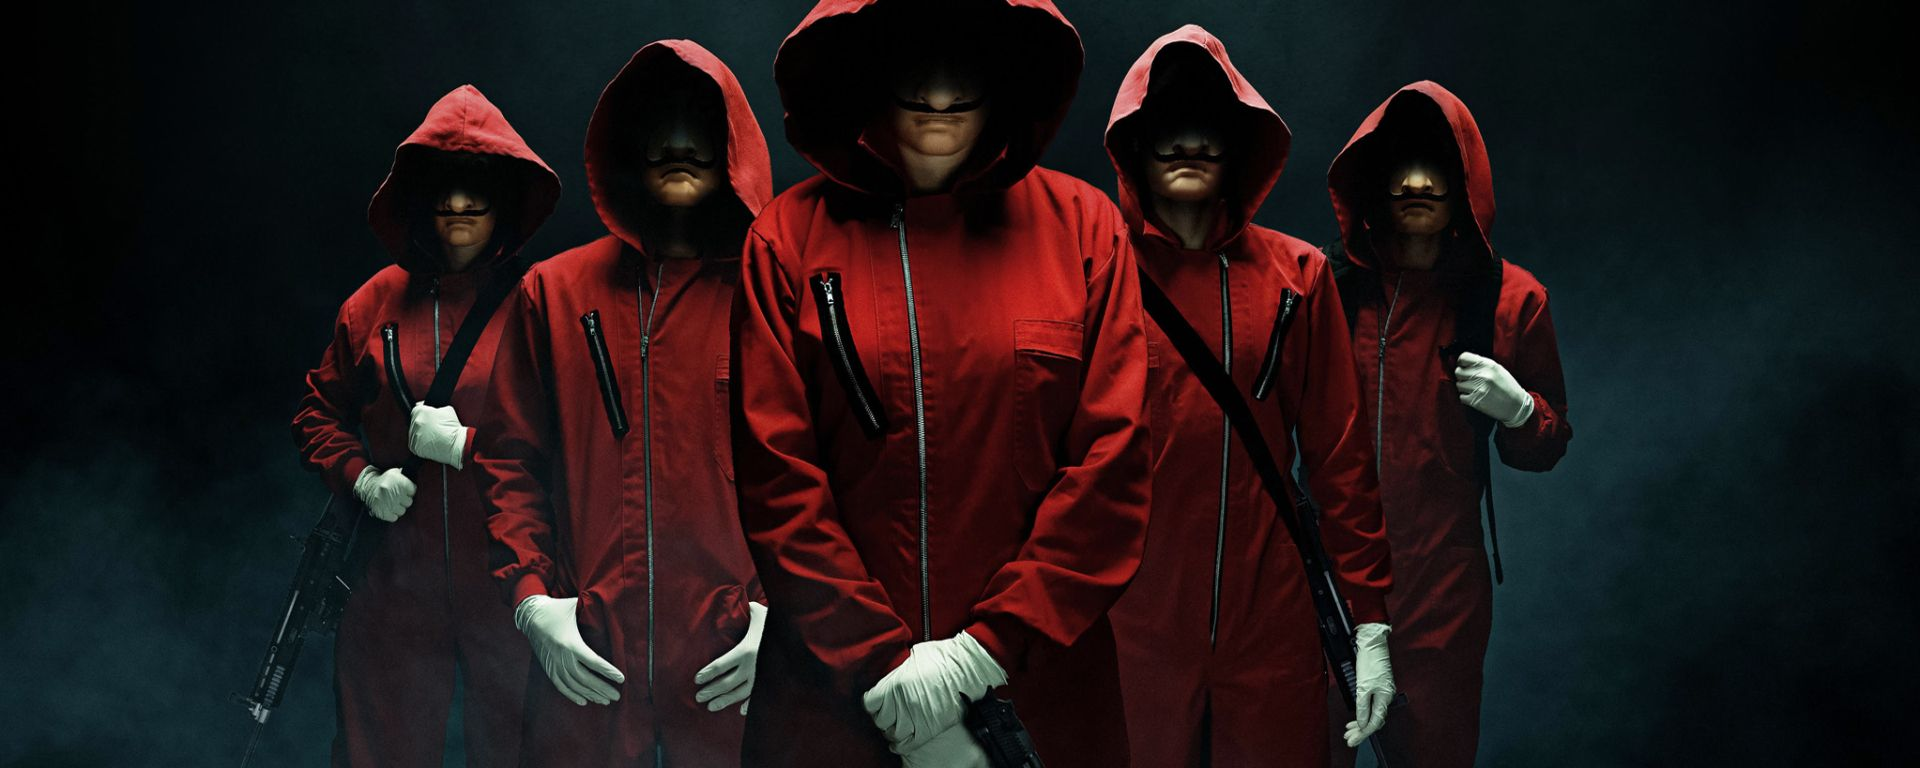 Money Heist Wallpapers Top Free Money Heist Backgrounds